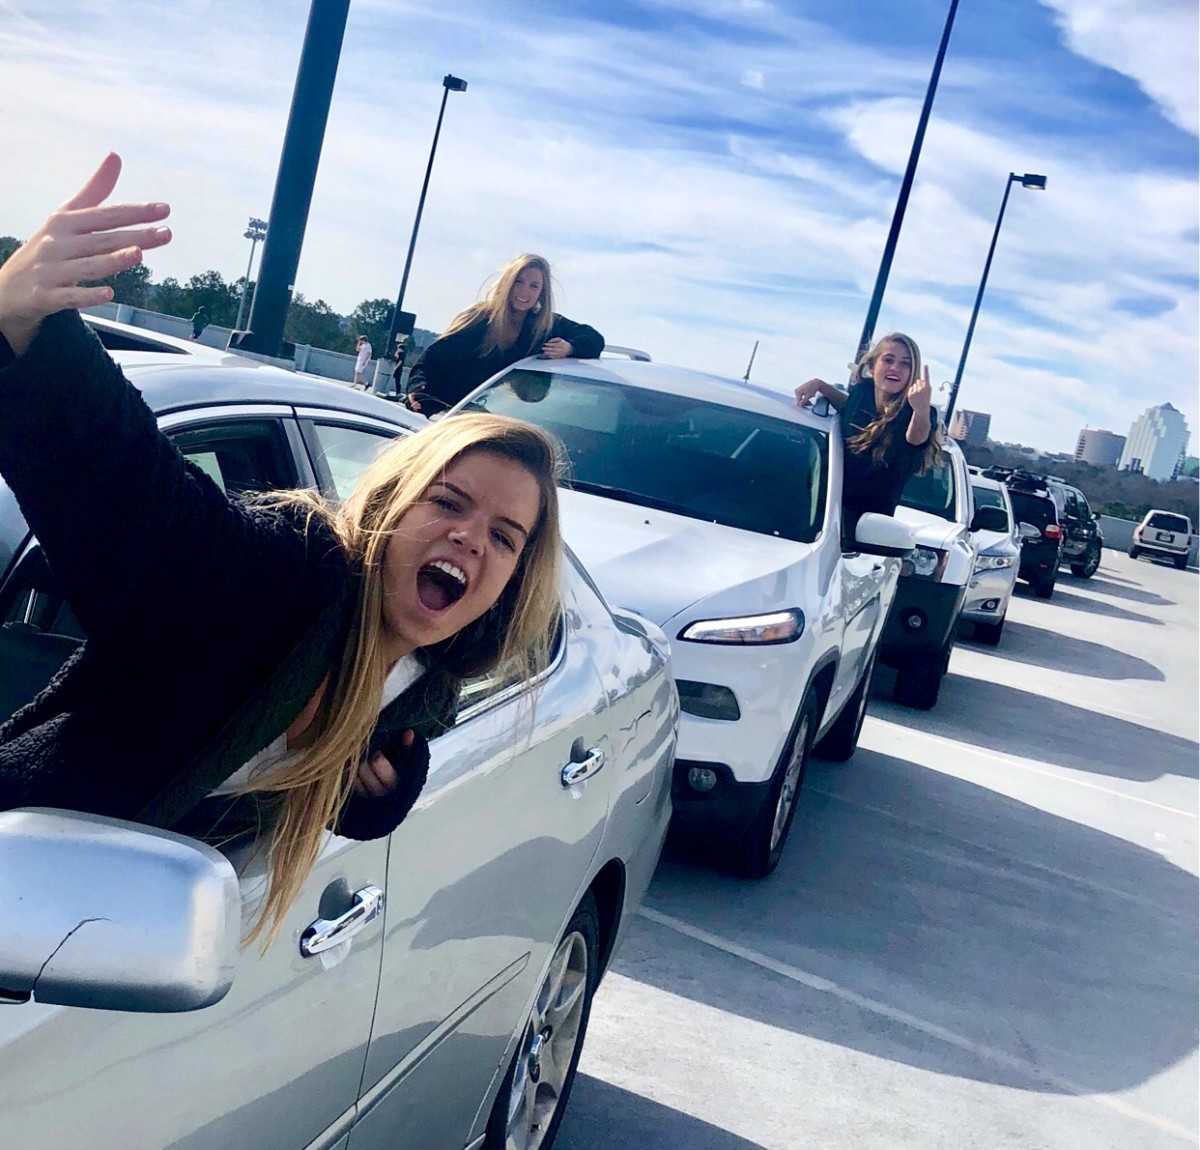 Through the Labyrinth: Sophomores Claudia Derek, Kate Jackson, Lexi Perry deal with the challenges of navigating through the parking deck traffic.